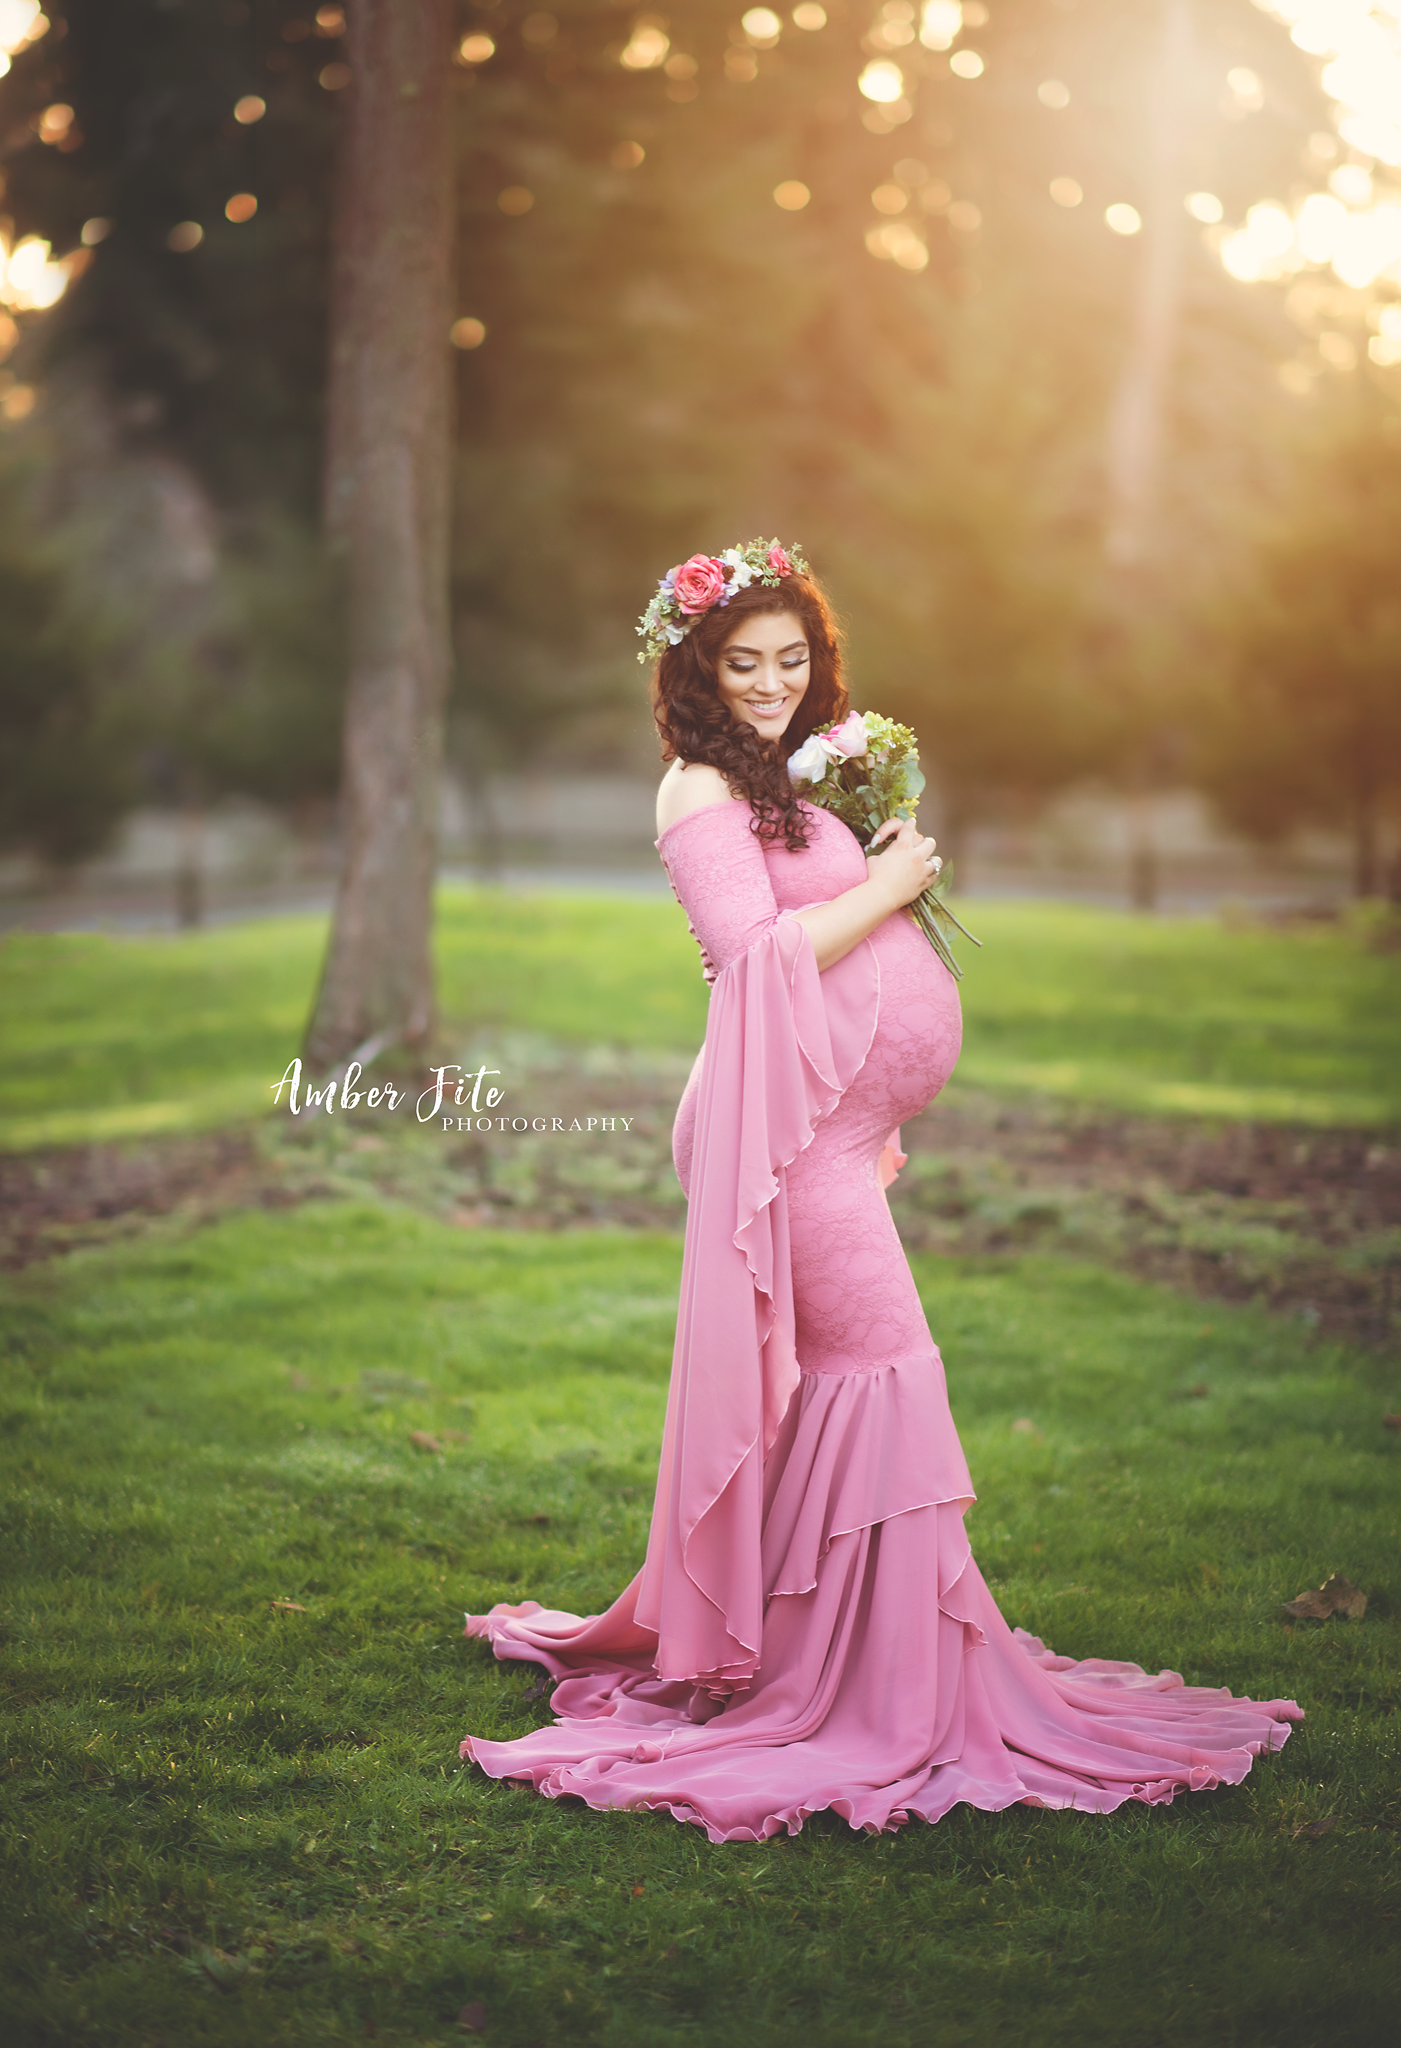 Amber Fite Photography - Maternity Portraits